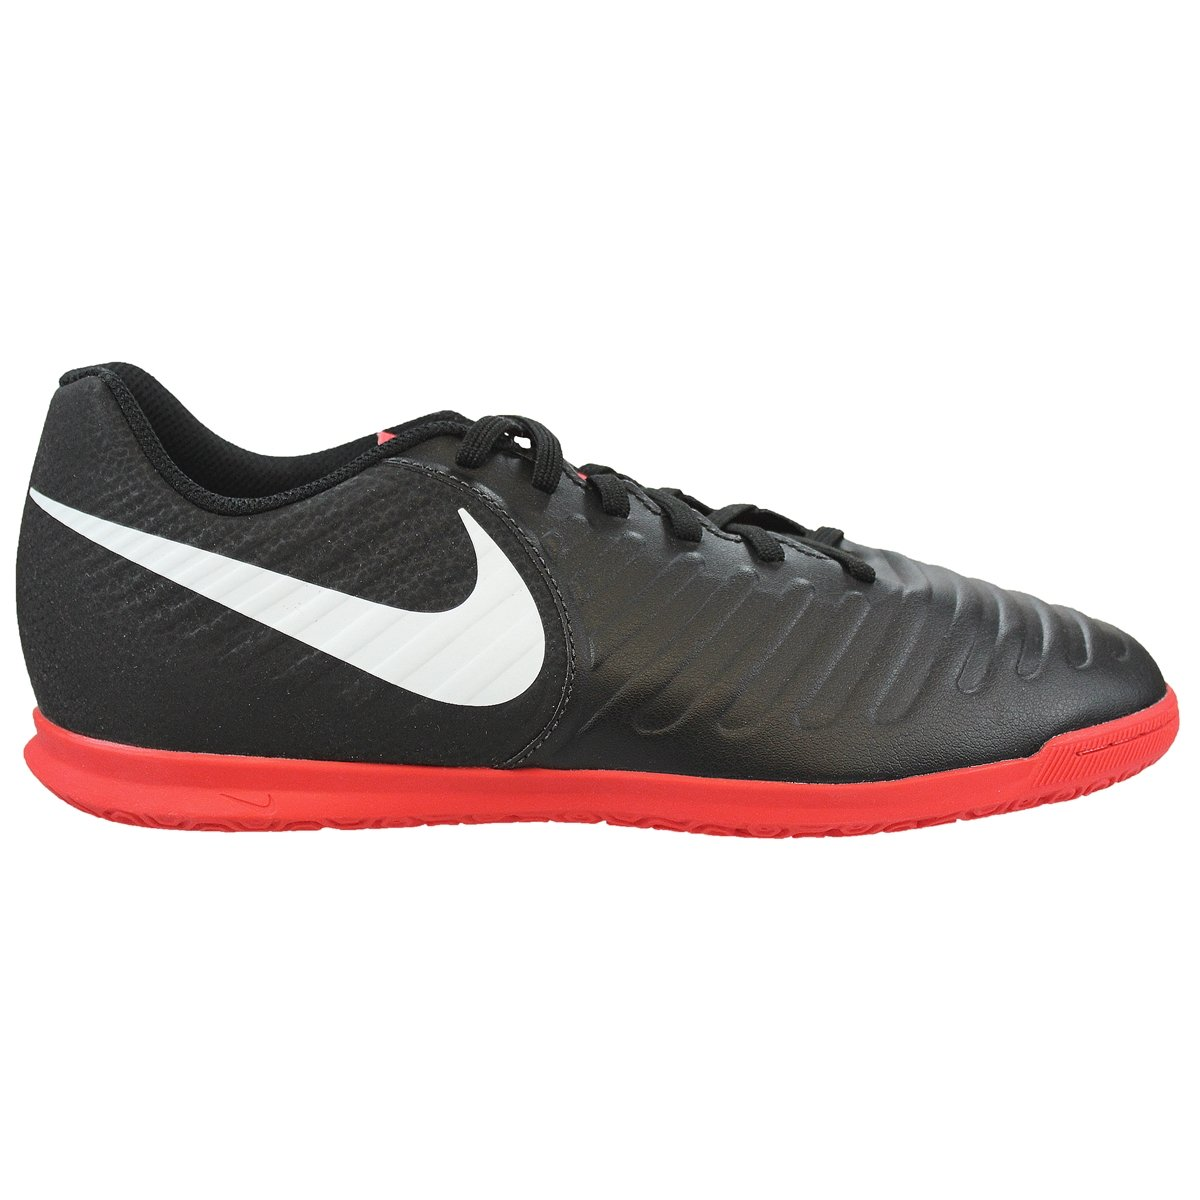 CHUTEIRA FUTSAL NIKE TIEMPO LEGEND 7 CLUB IN 0a763425ebe49